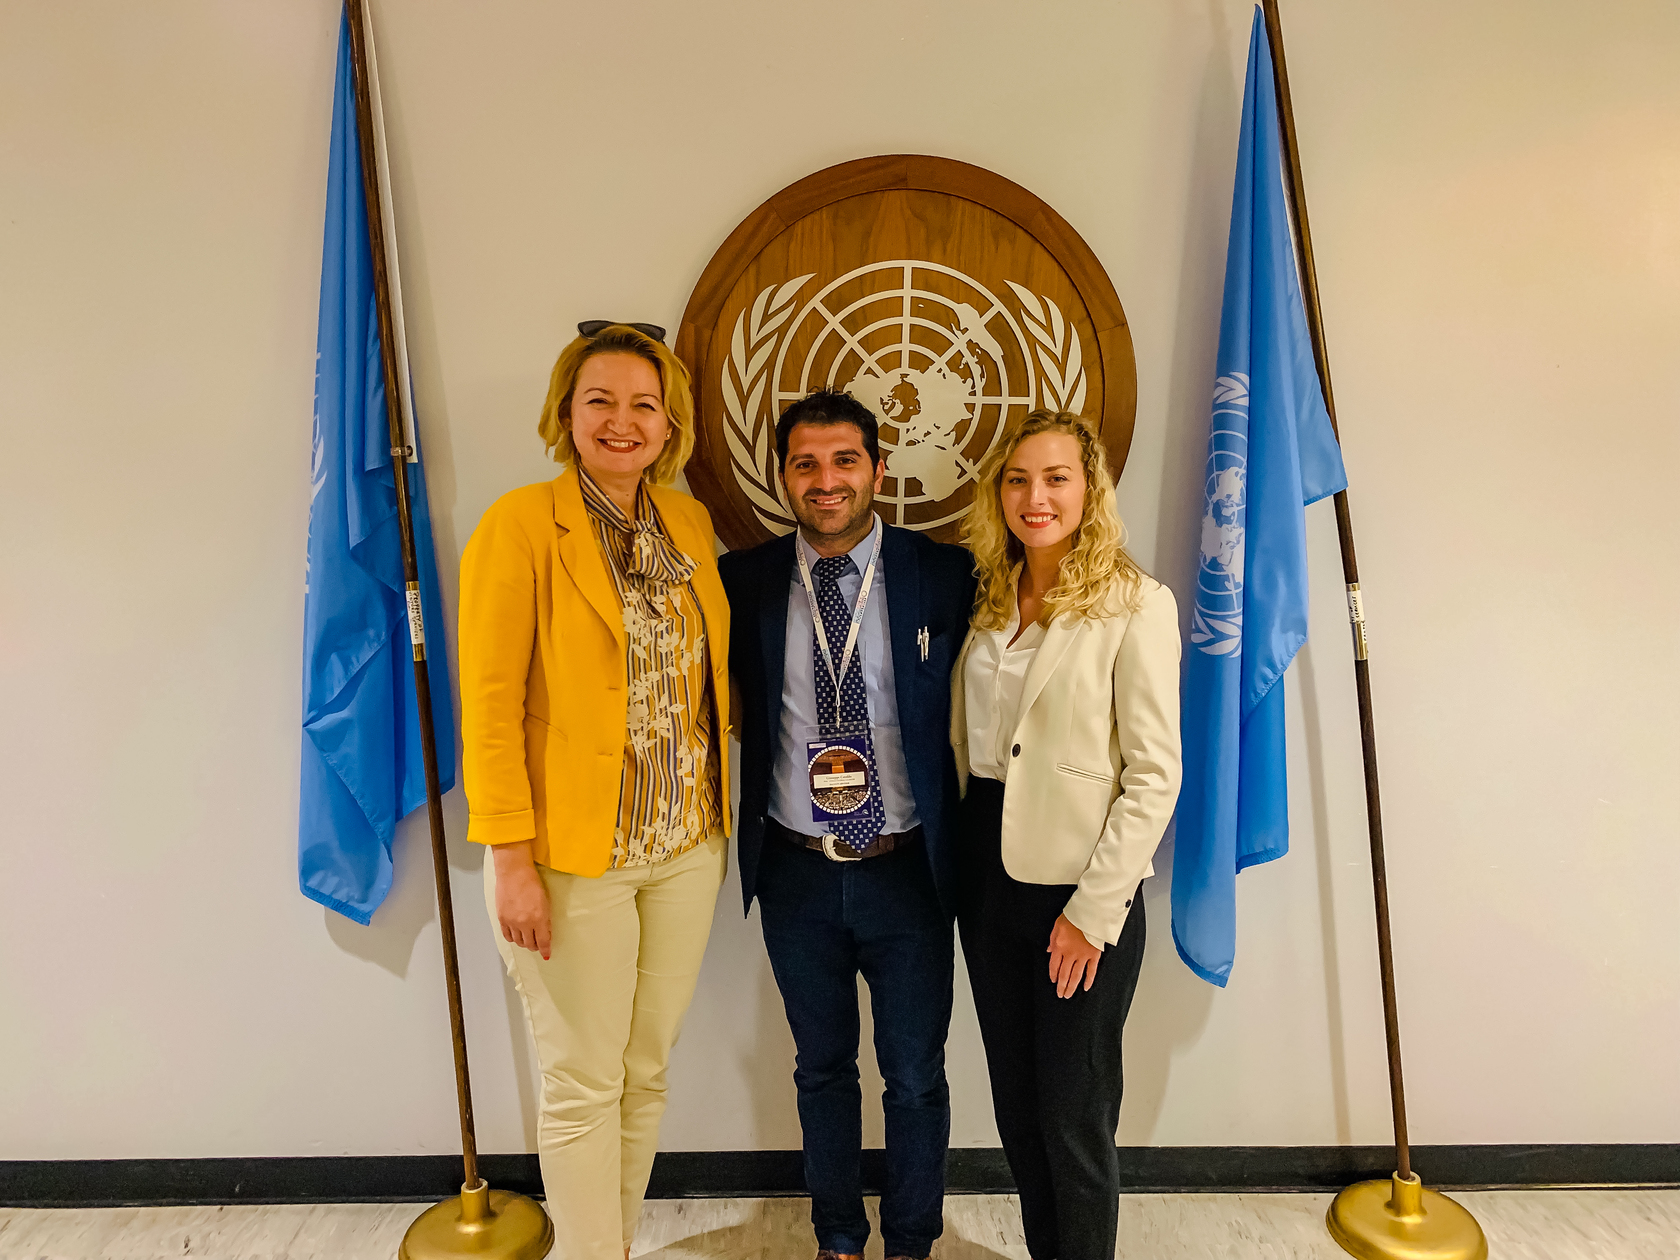 Dr. Borislava Manojlovic leads workshop at the UN on environmental challenges and consensus